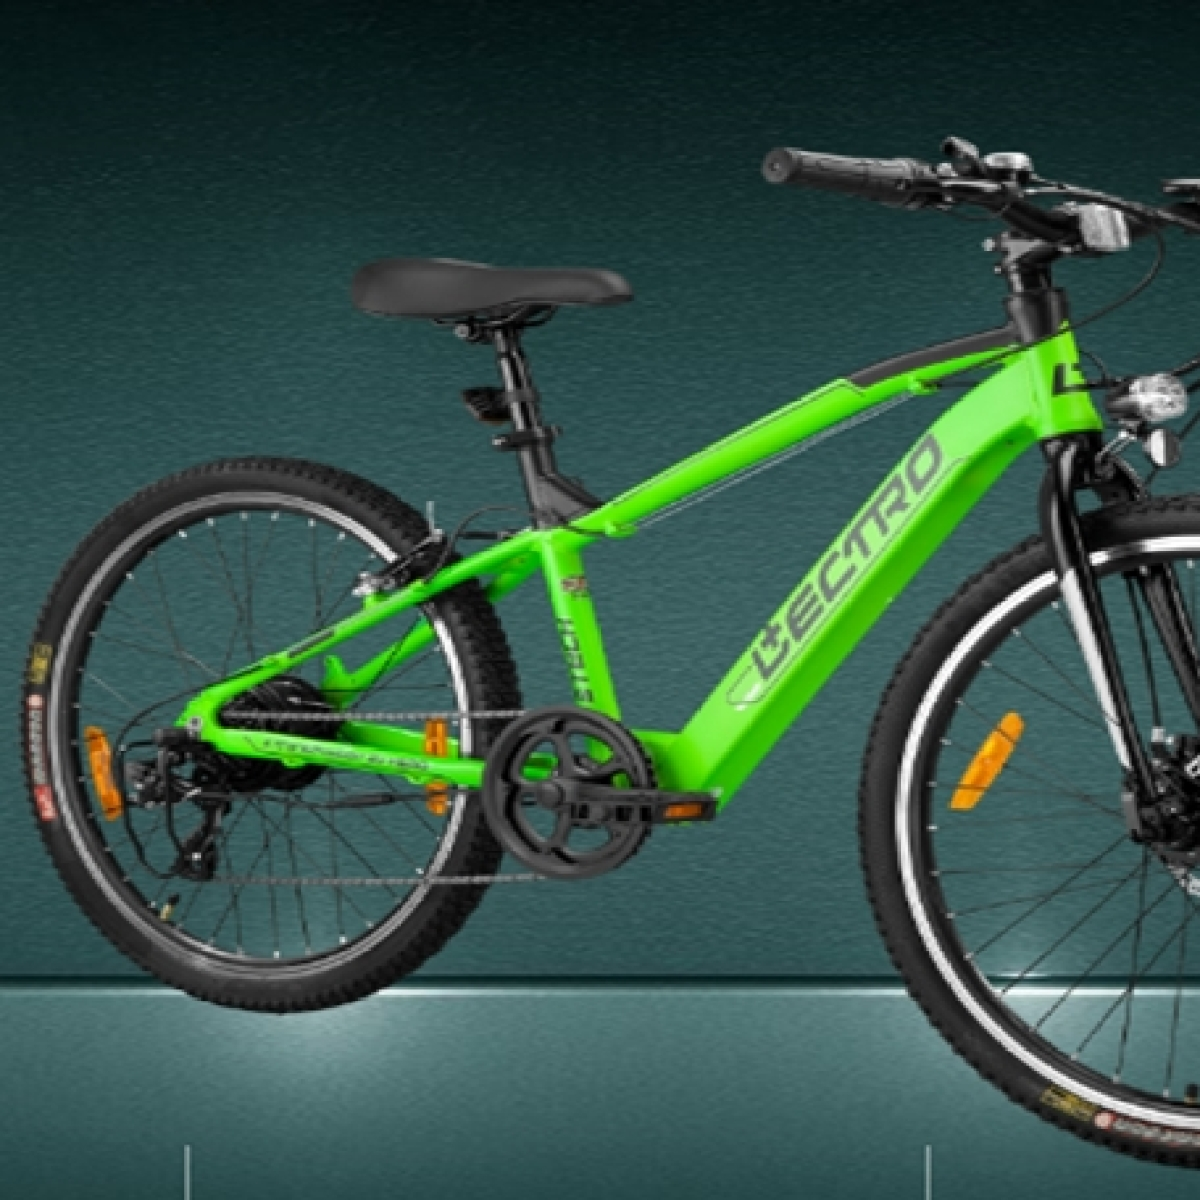 Hero Cycles launches all-new electric bicycle at Rs 30K